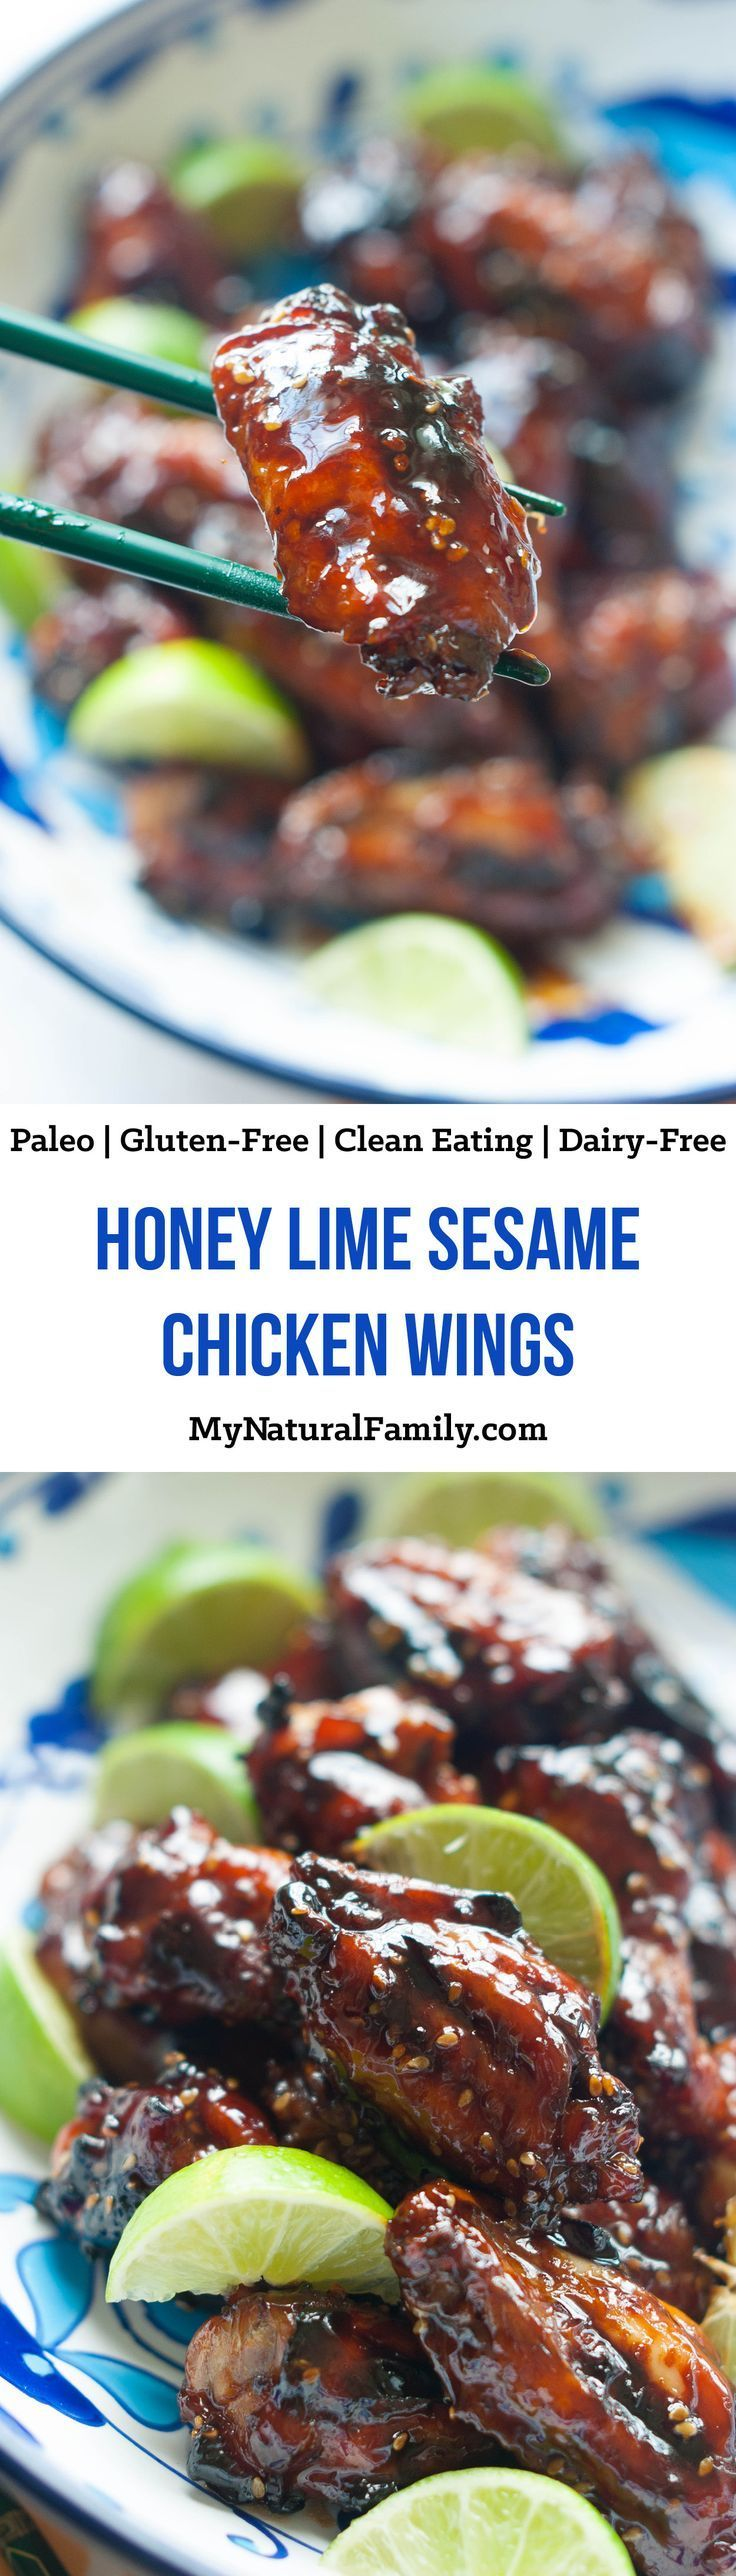 Honey Lime Sesame Chicken Wings Recipe {Paleo, Gluten Free, Clean Eating, Dairy Free}